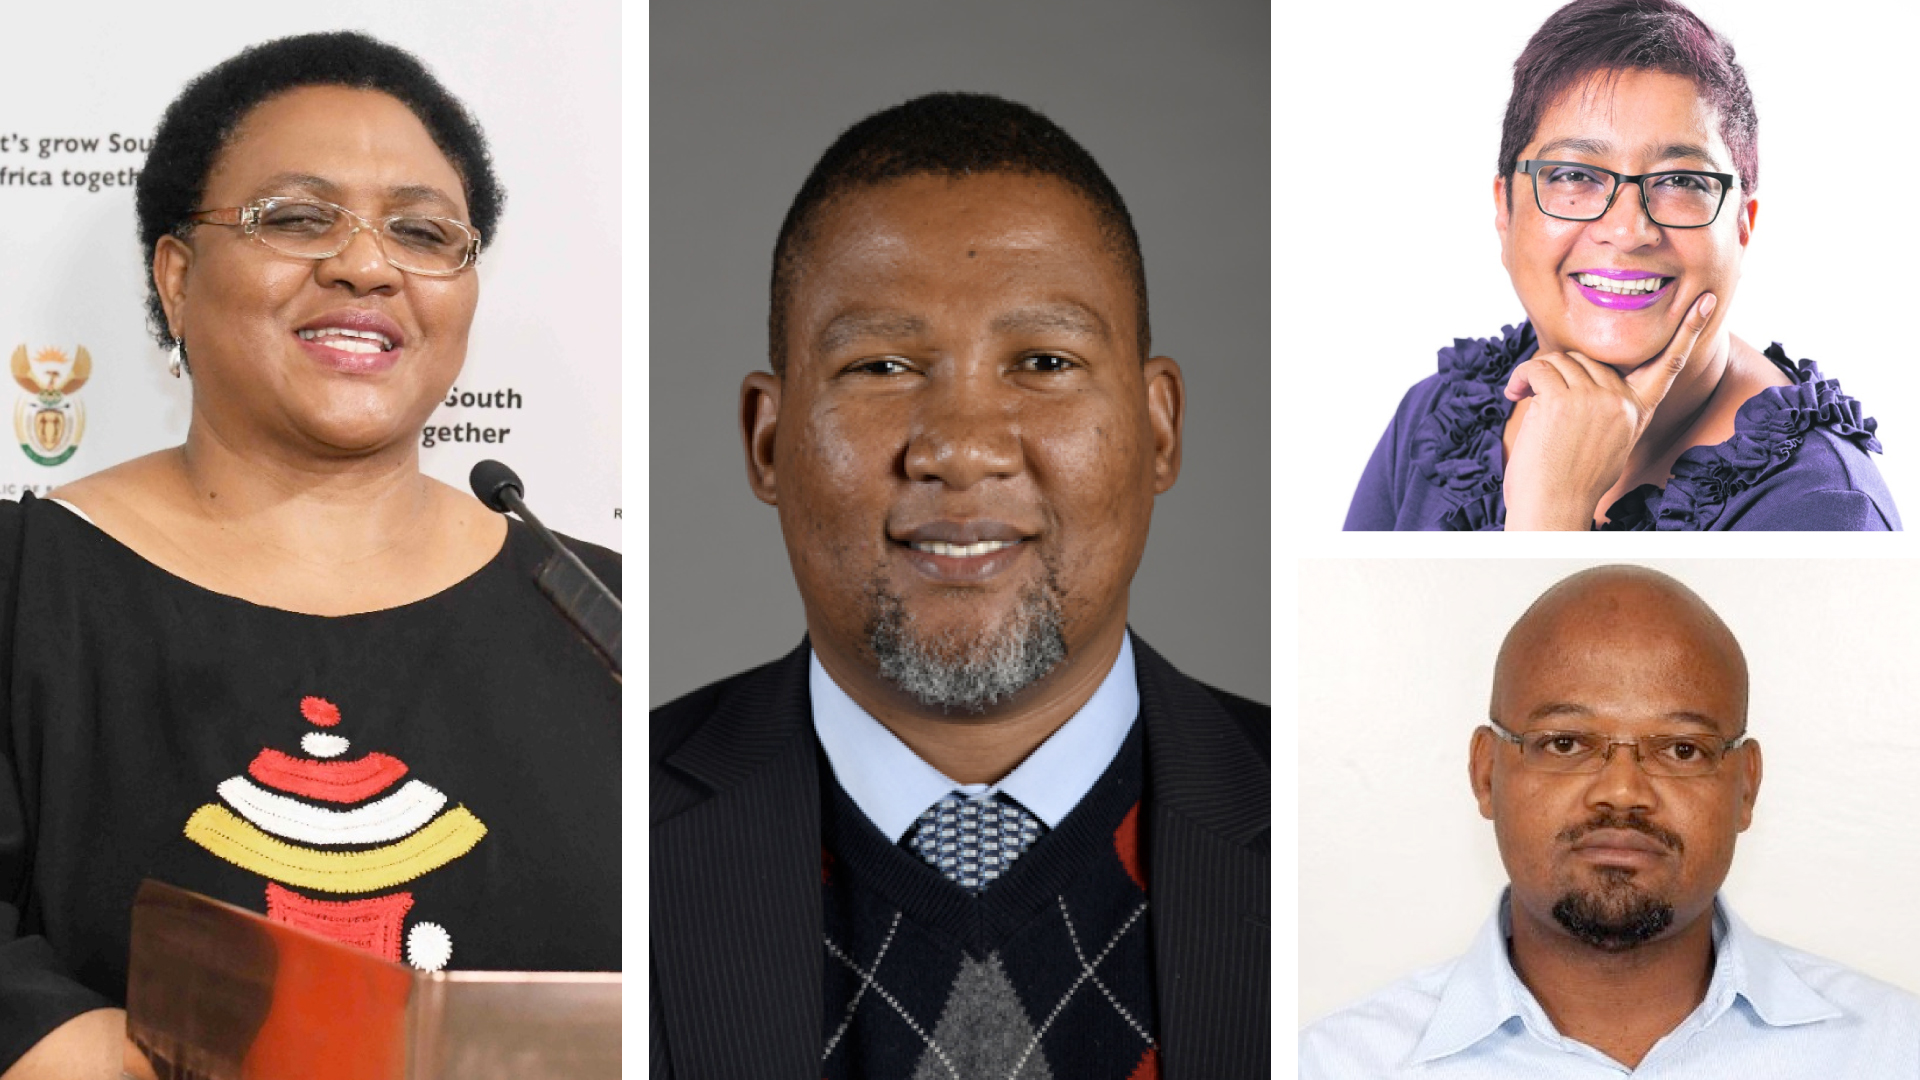 Pictured from left is Thoko Didiza, minister of agriculture, land reform and rural development, Nkosi Zwelivelile Mandela, chairperson of the portfolio committee on agriculture, land and rural development, (top right) Joyene Isaacs, chairperson of the Agricultural Research Council and (bottom right) Dr Boitshoko Ntshabele, new interim chairperson of Onderstepoort Biological Products. Photo: Supplied.